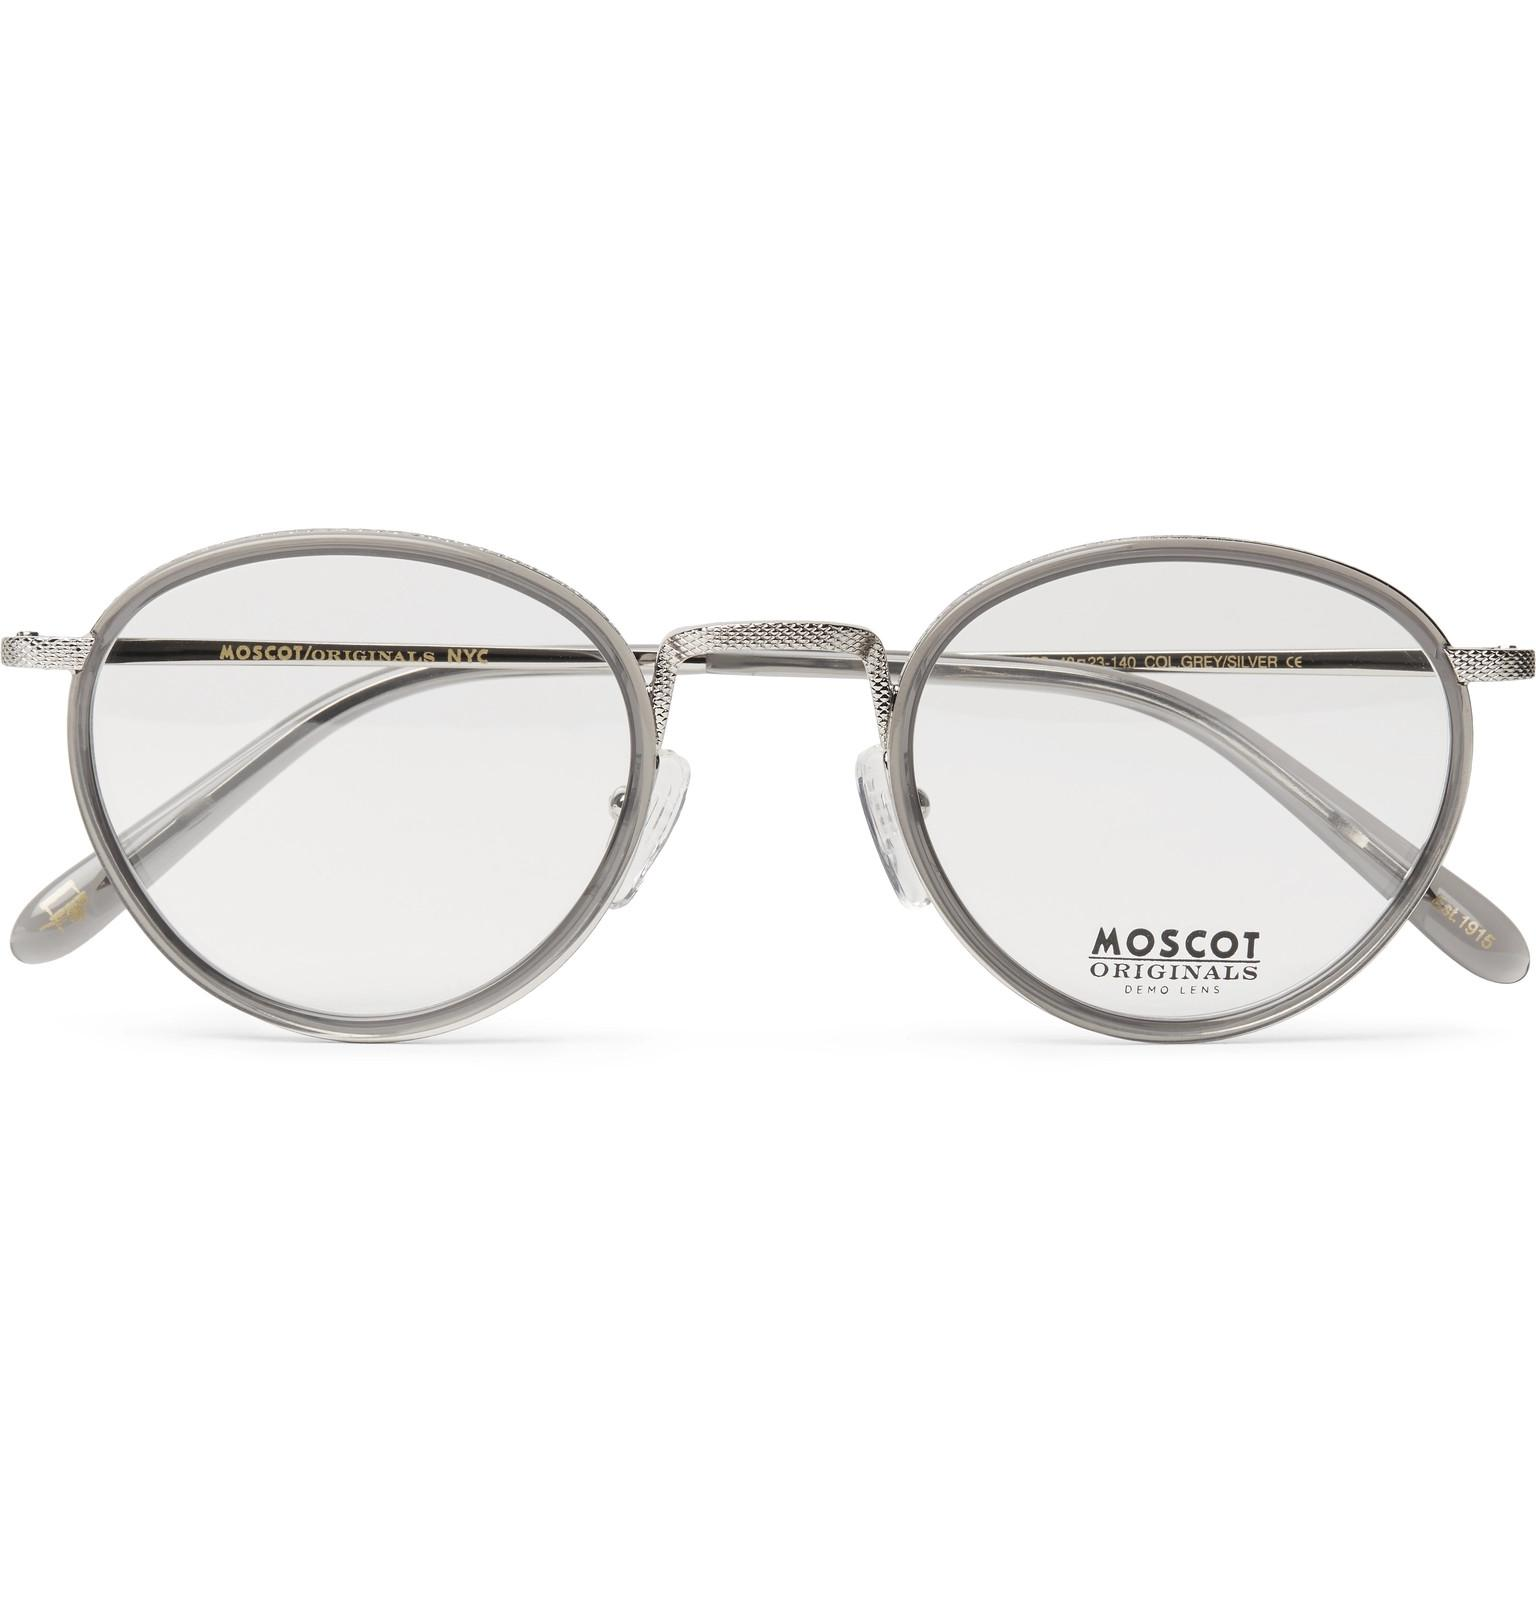 935f1f0aad6 Moscot Bupkes Round-frame Acetate-trimmed Silver-tone Optical ...